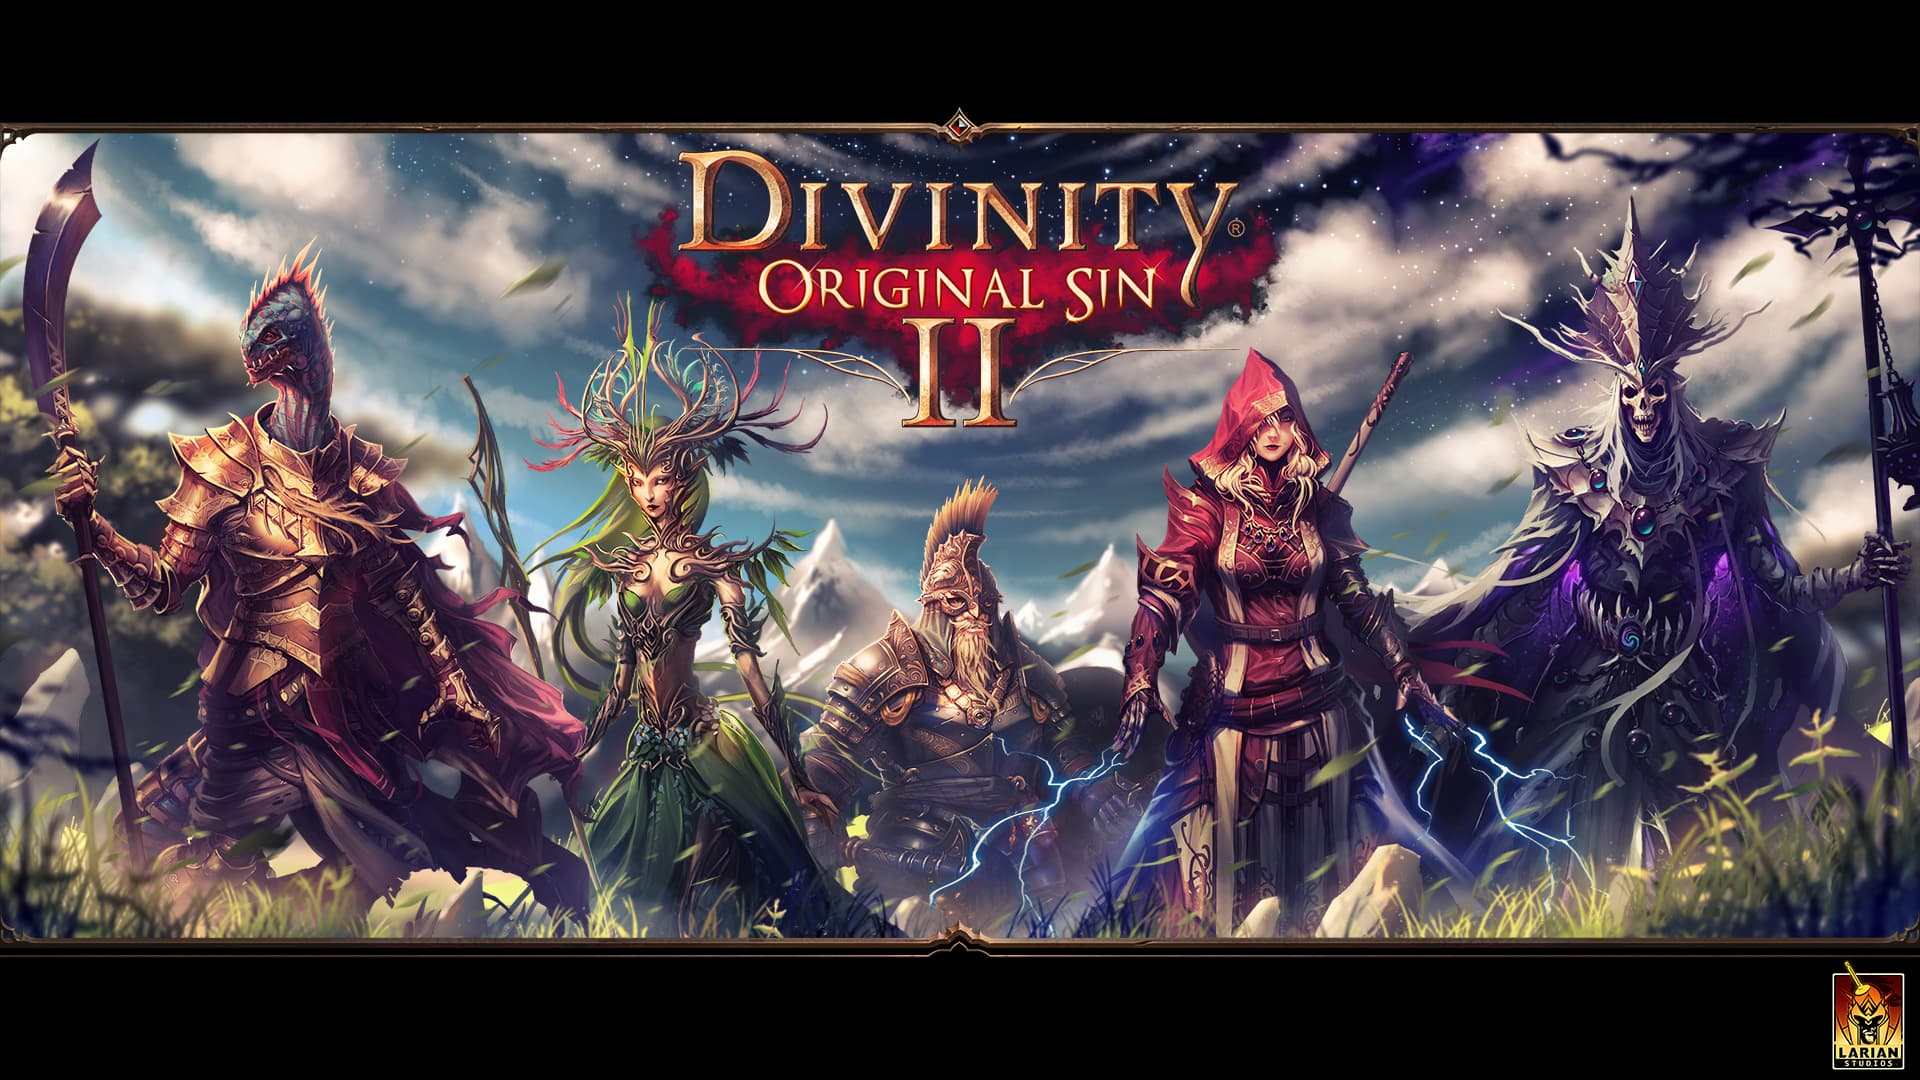 Can we talk about how awesome these elves are? : DivinityOriginalSin